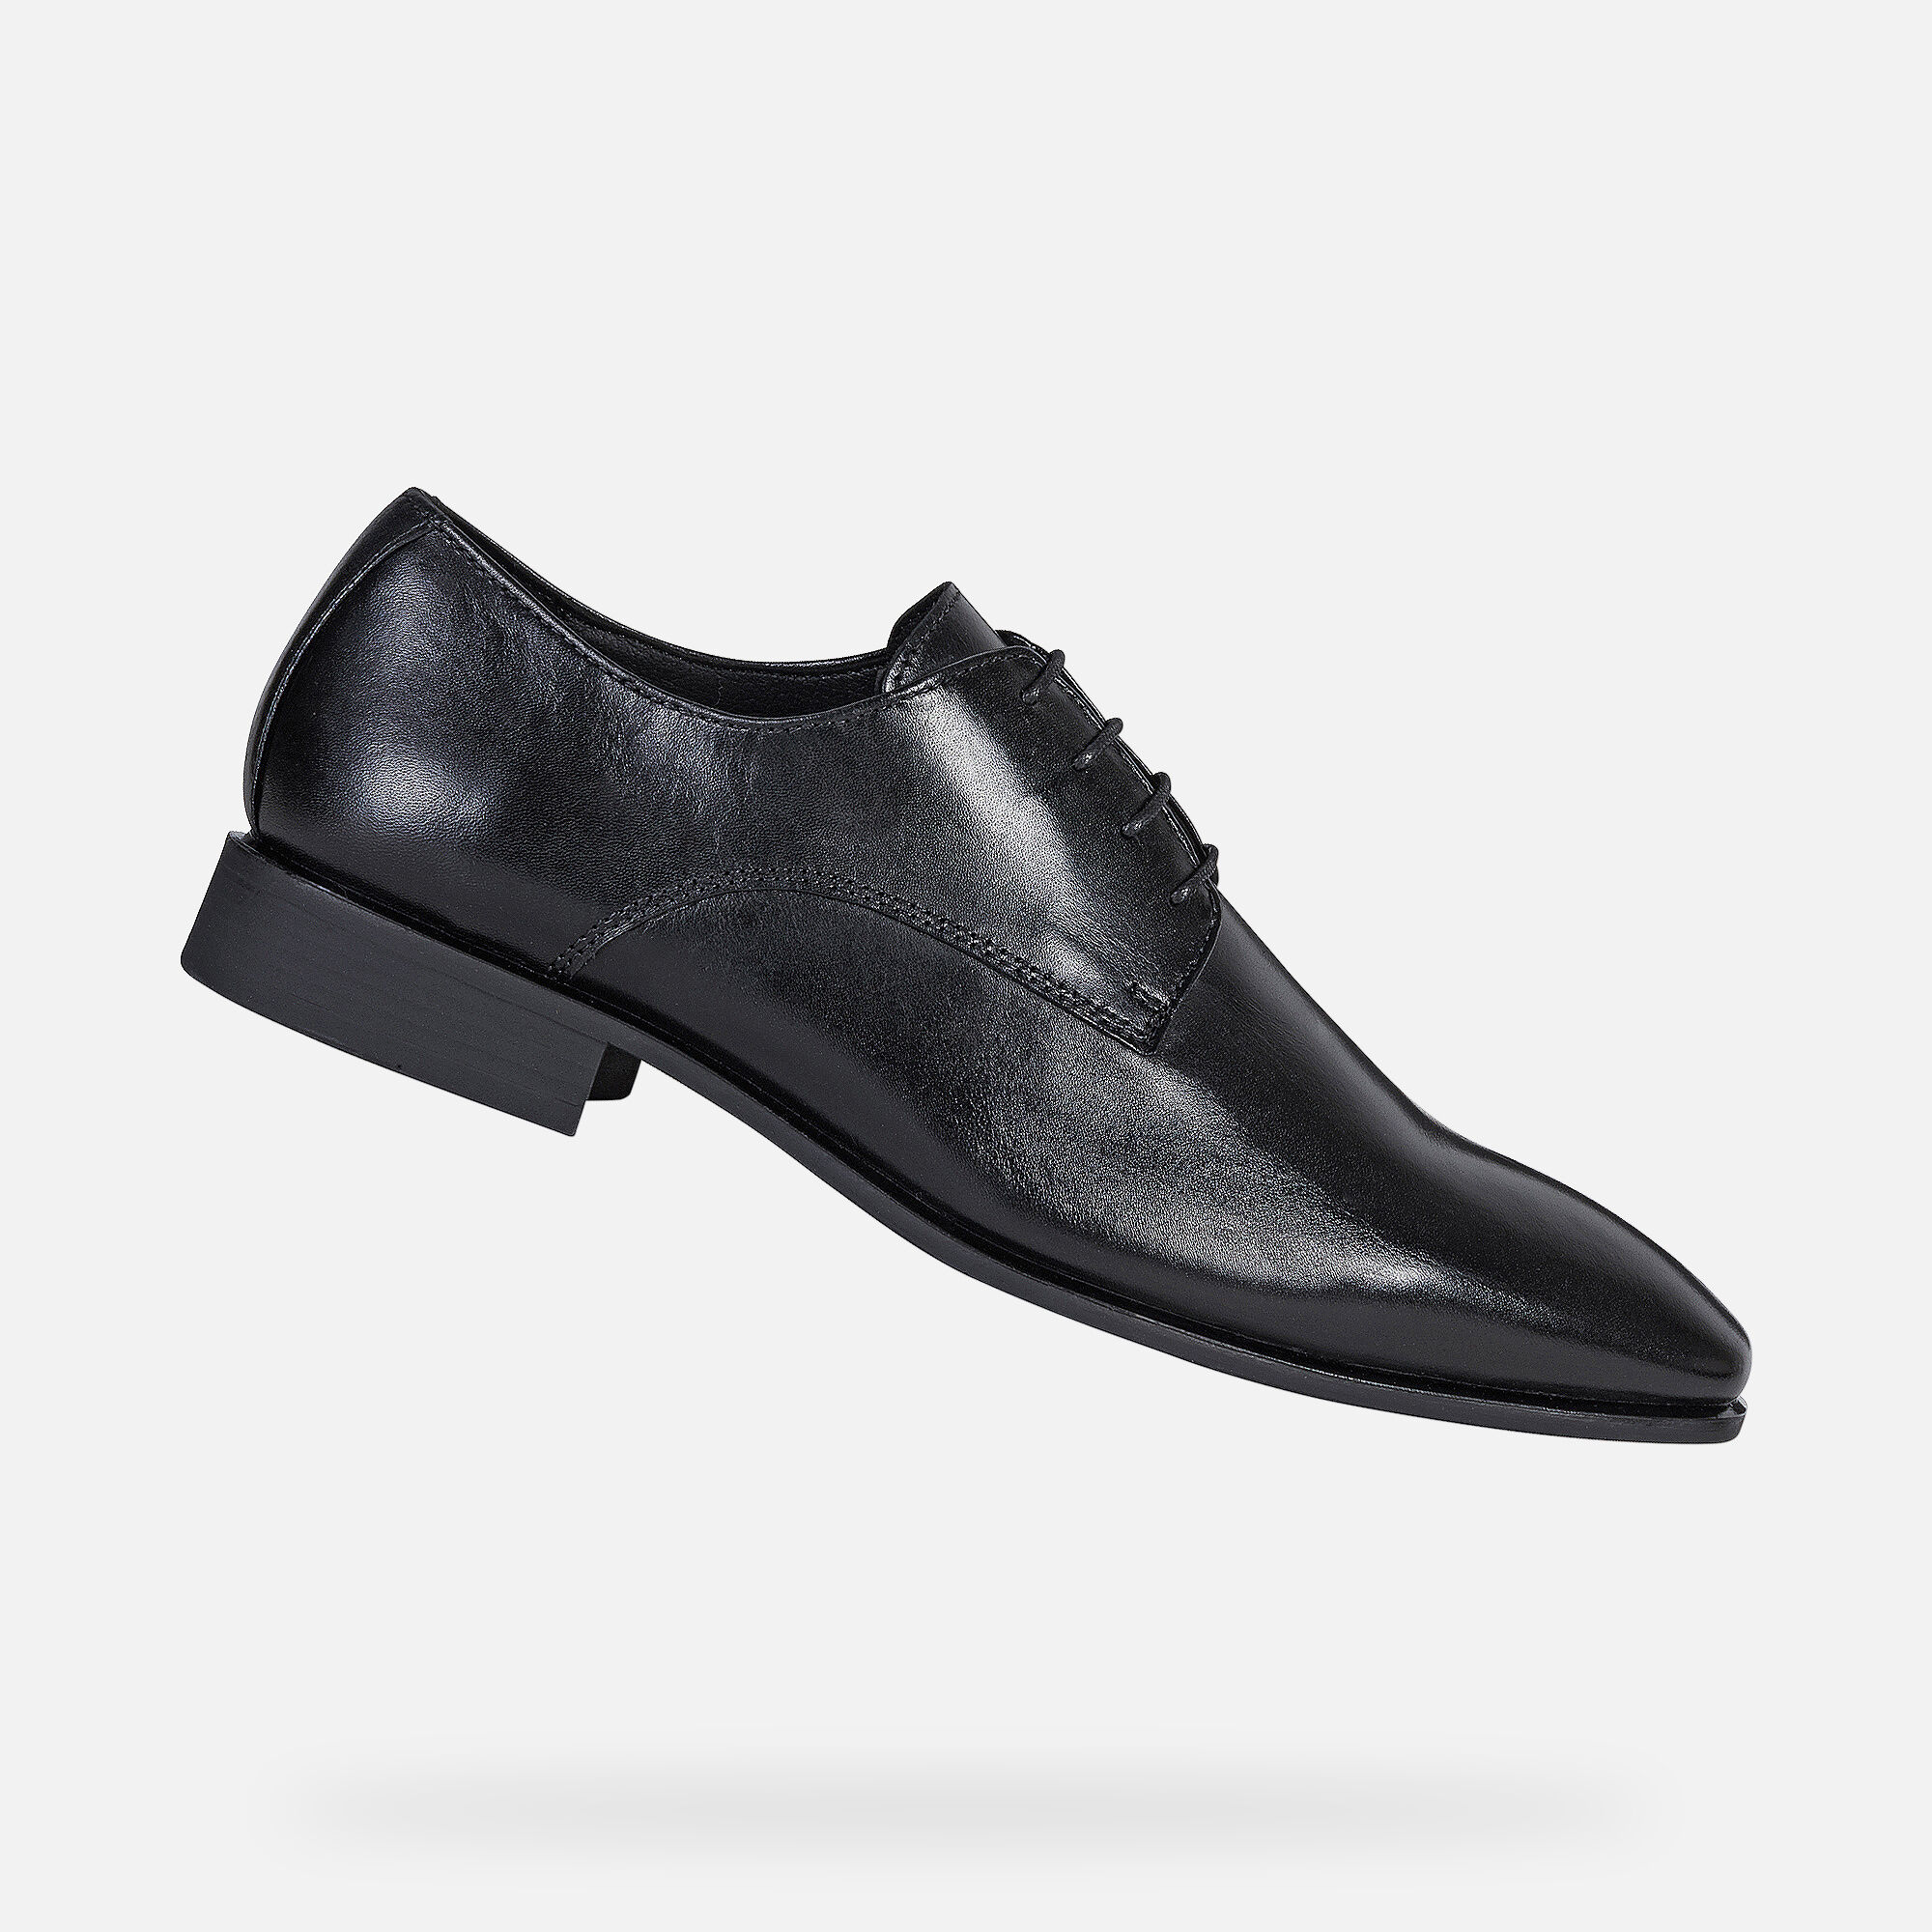 Elegant and Formal Shoes for Men   Geox